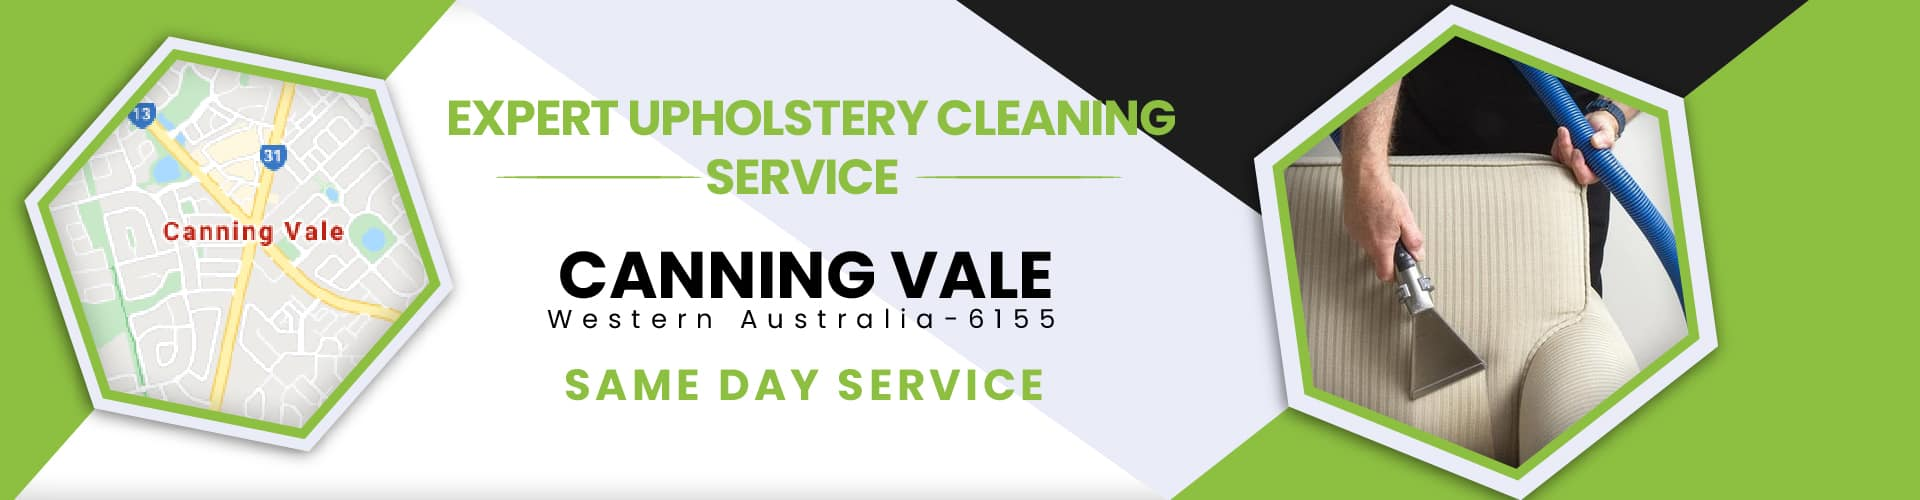 Upholstery Cleaning Canning Vale